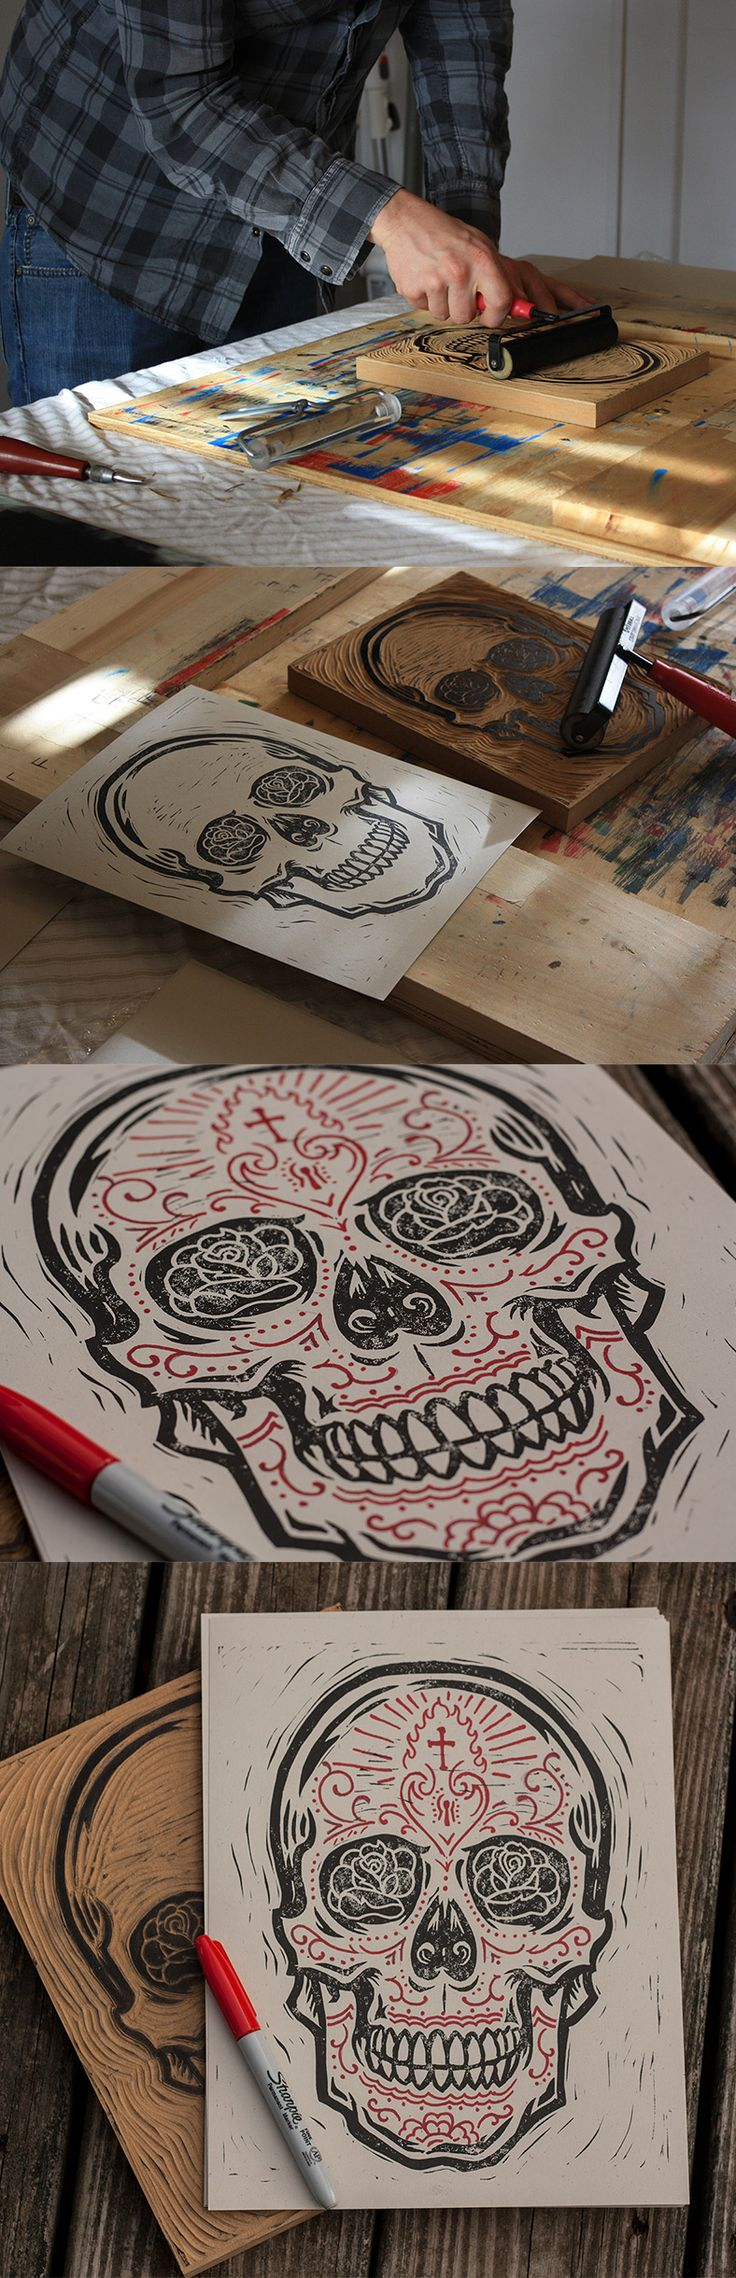 Sugar Skull - Block Print by Derrick Castle  Auf dribbble.com http://www.pinterest.com/terryburger/lessons-to-explore/